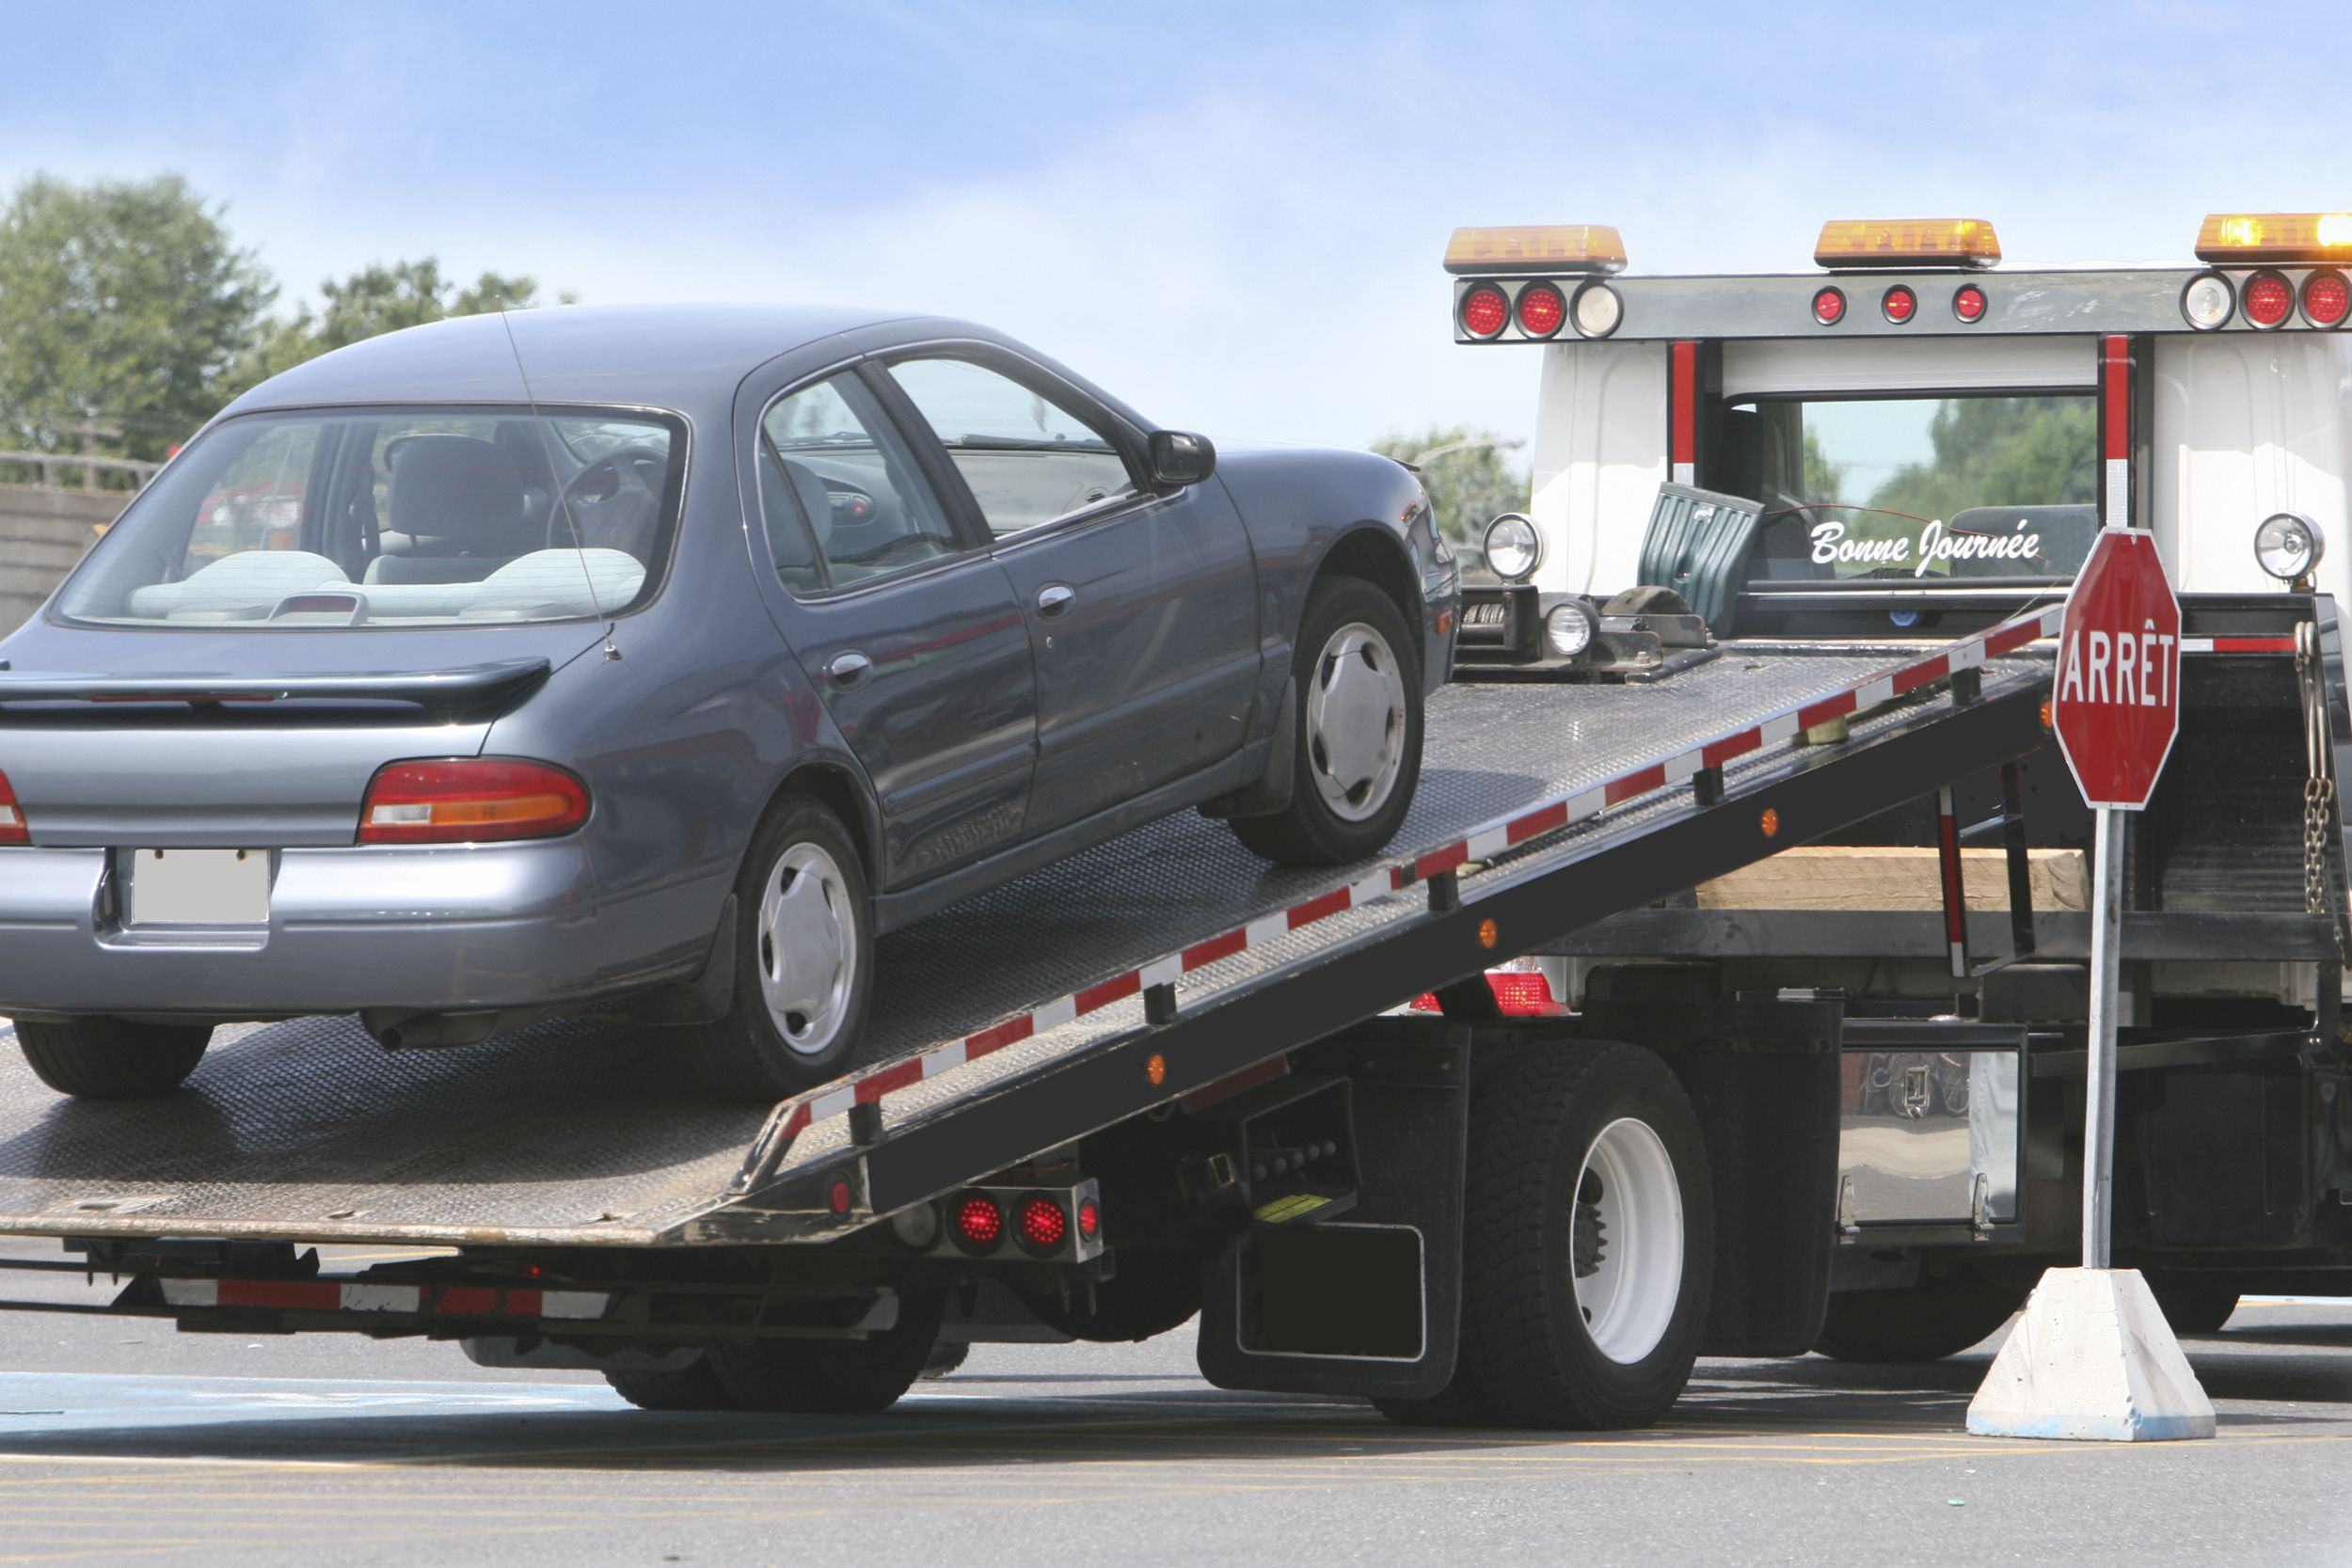 How Do I Get My Car Out of Impound?